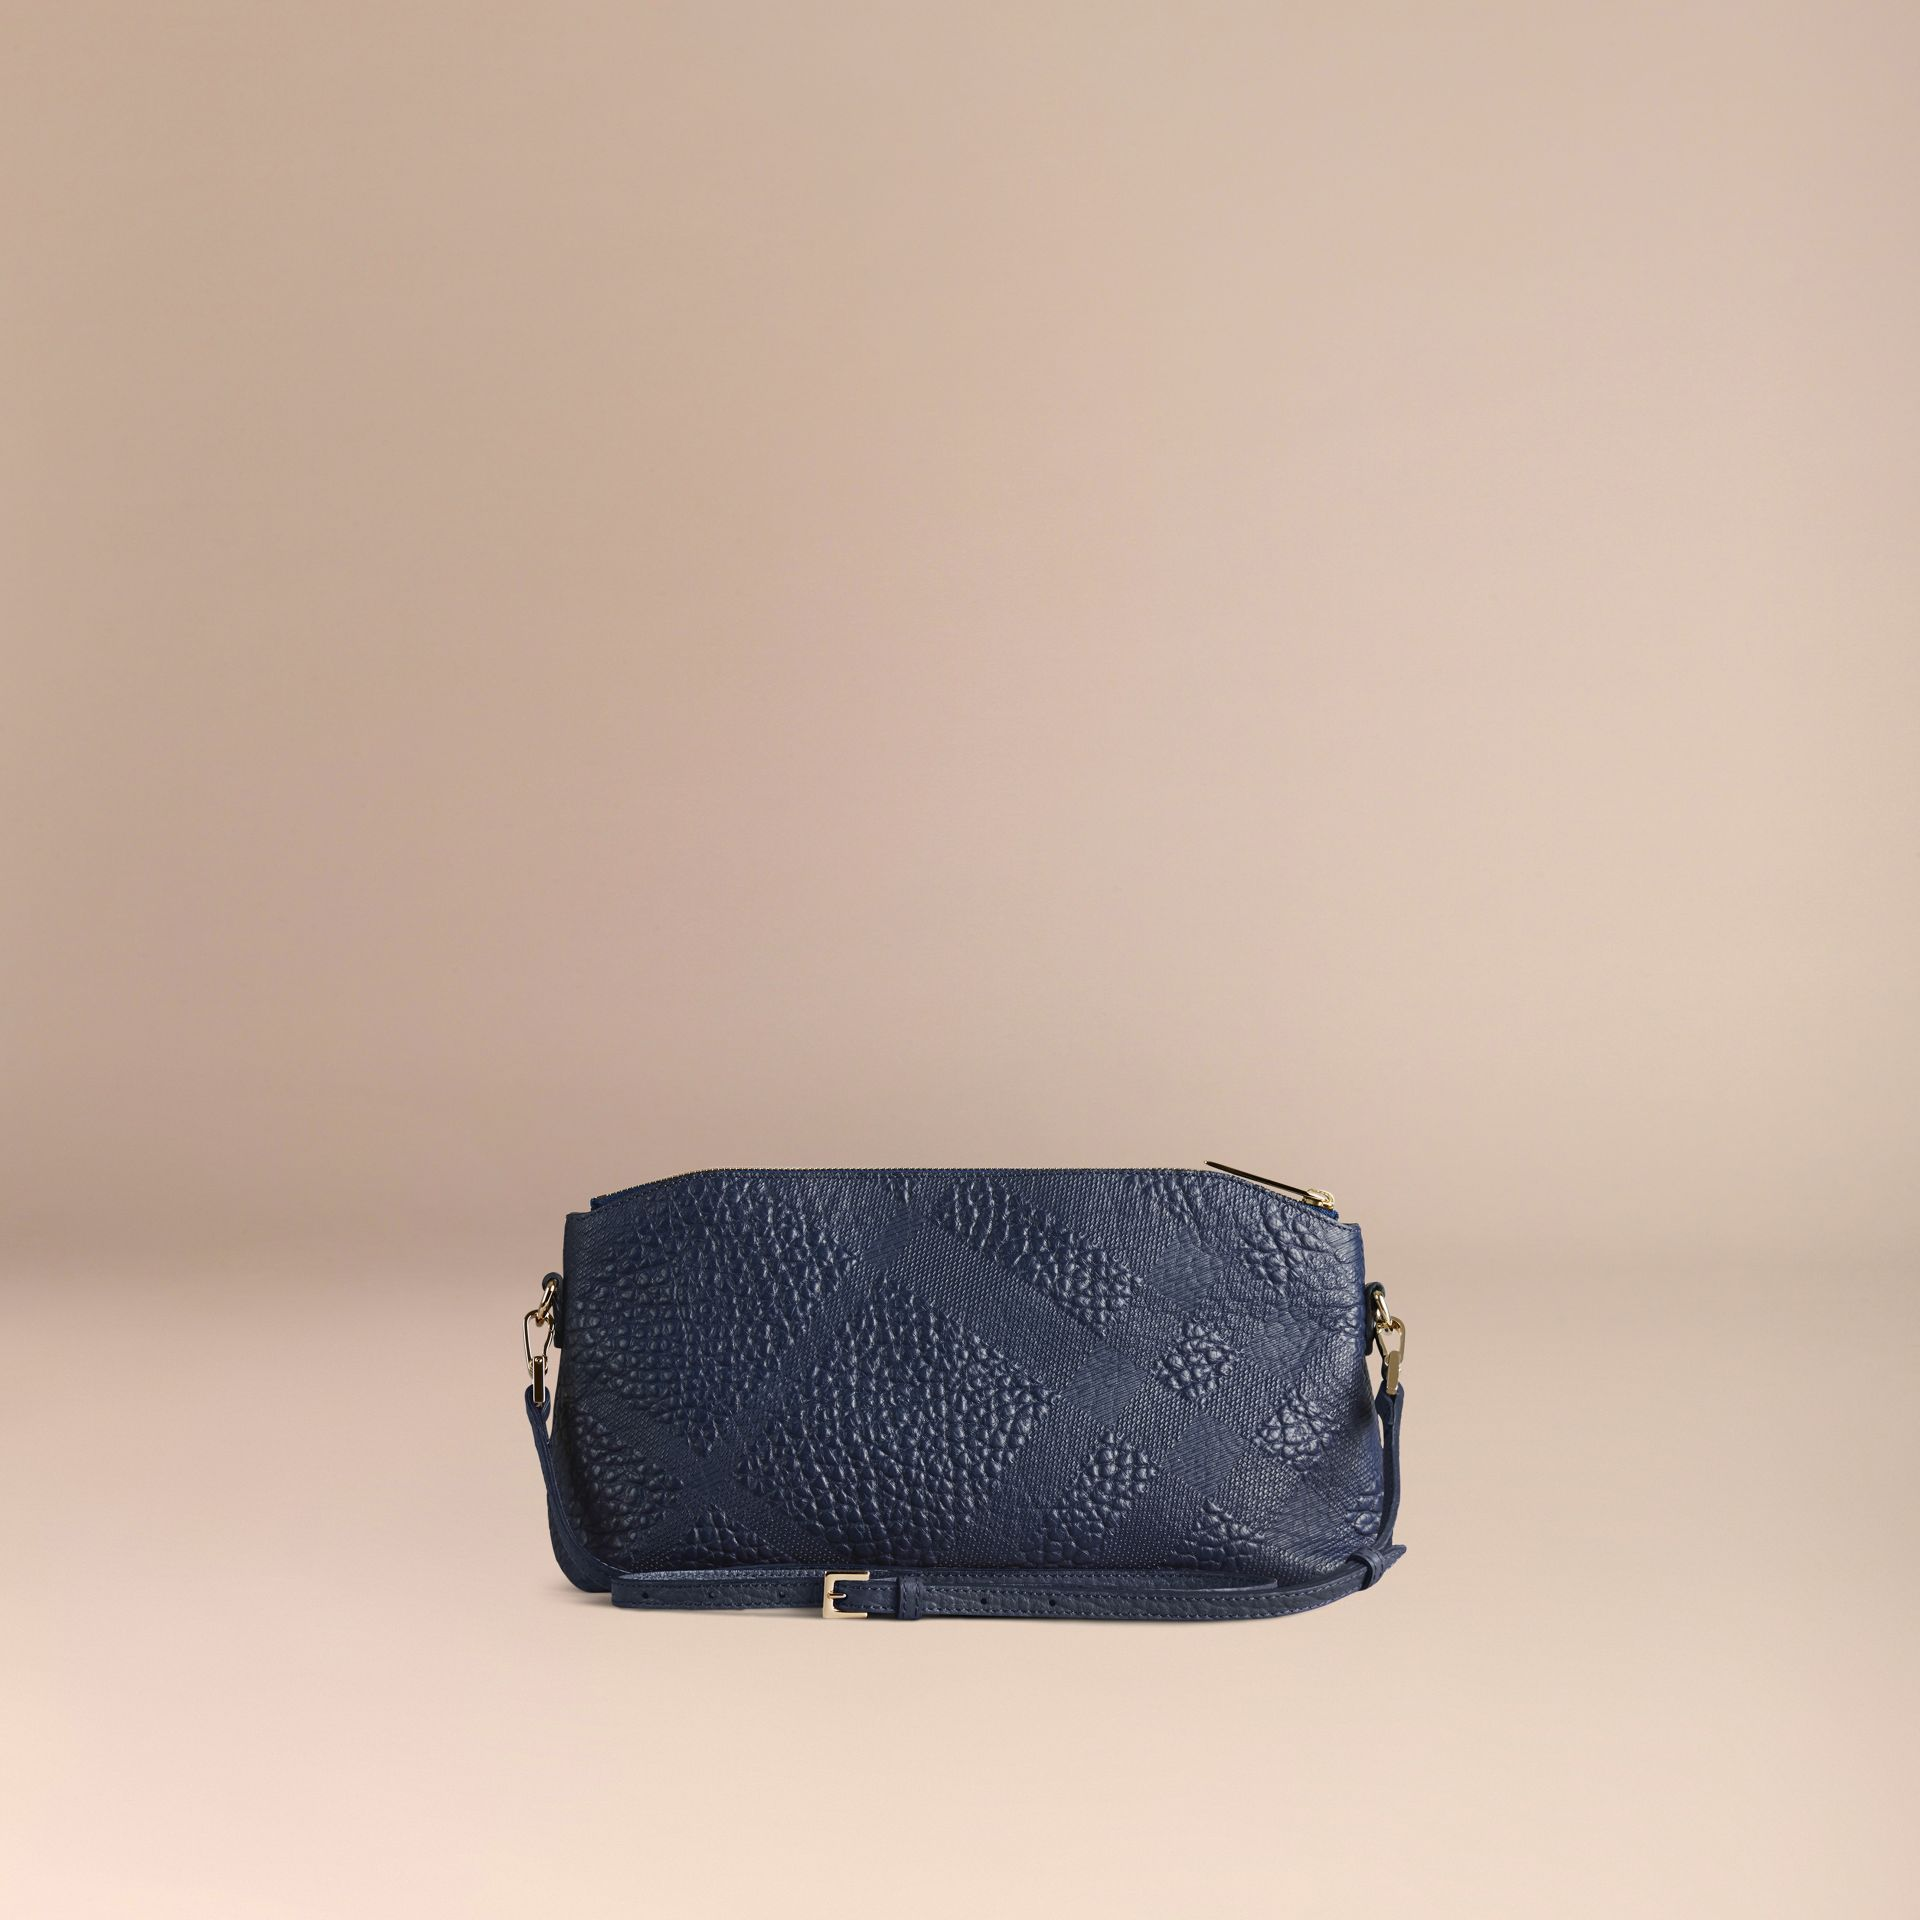 Small Embossed Check Leather Clutch Bag Blue Carbon - gallery image 5